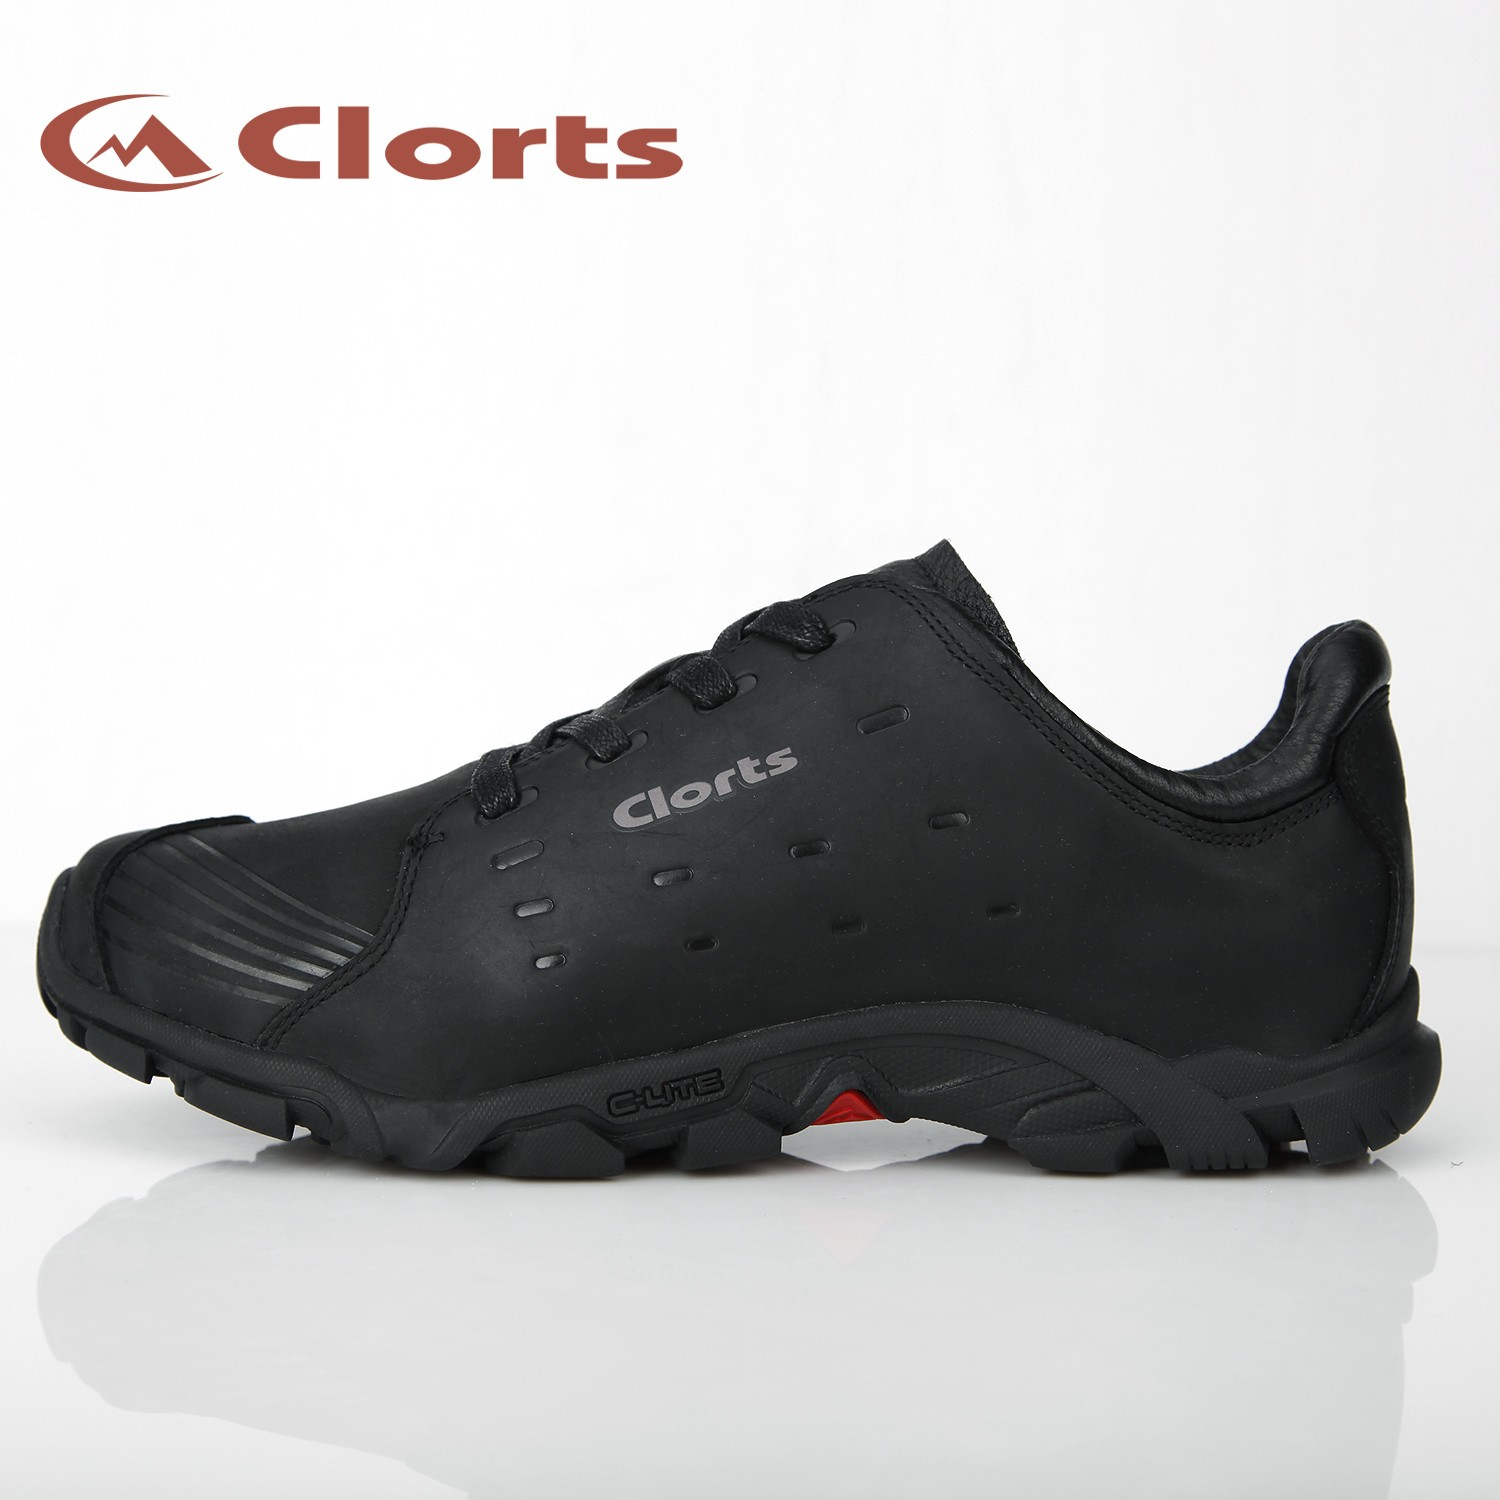 Mens Leather Adventure Shoes Manufacturers, Mens Leather Adventure Shoes Factory, Supply Mens Leather Adventure Shoes